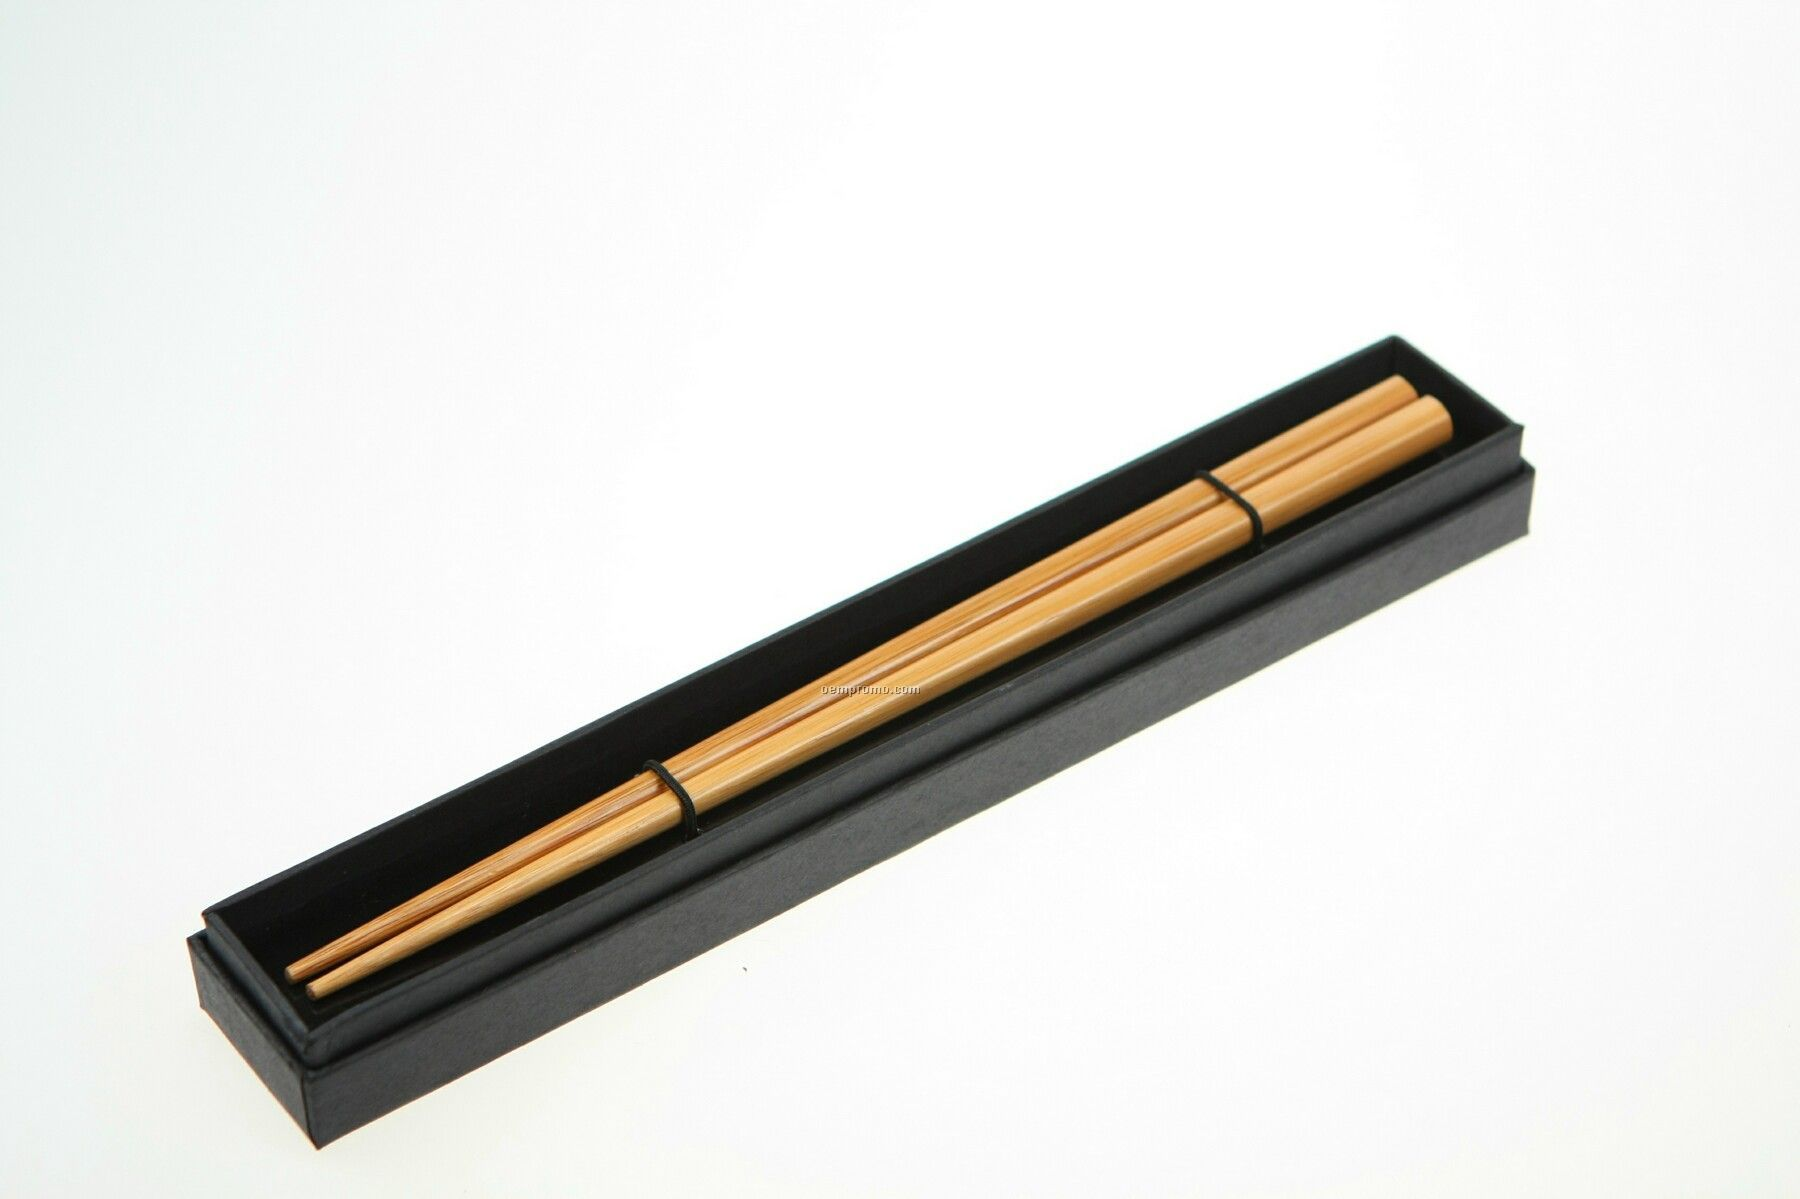 Bamboo Chopsticks In Black Cardboard Box